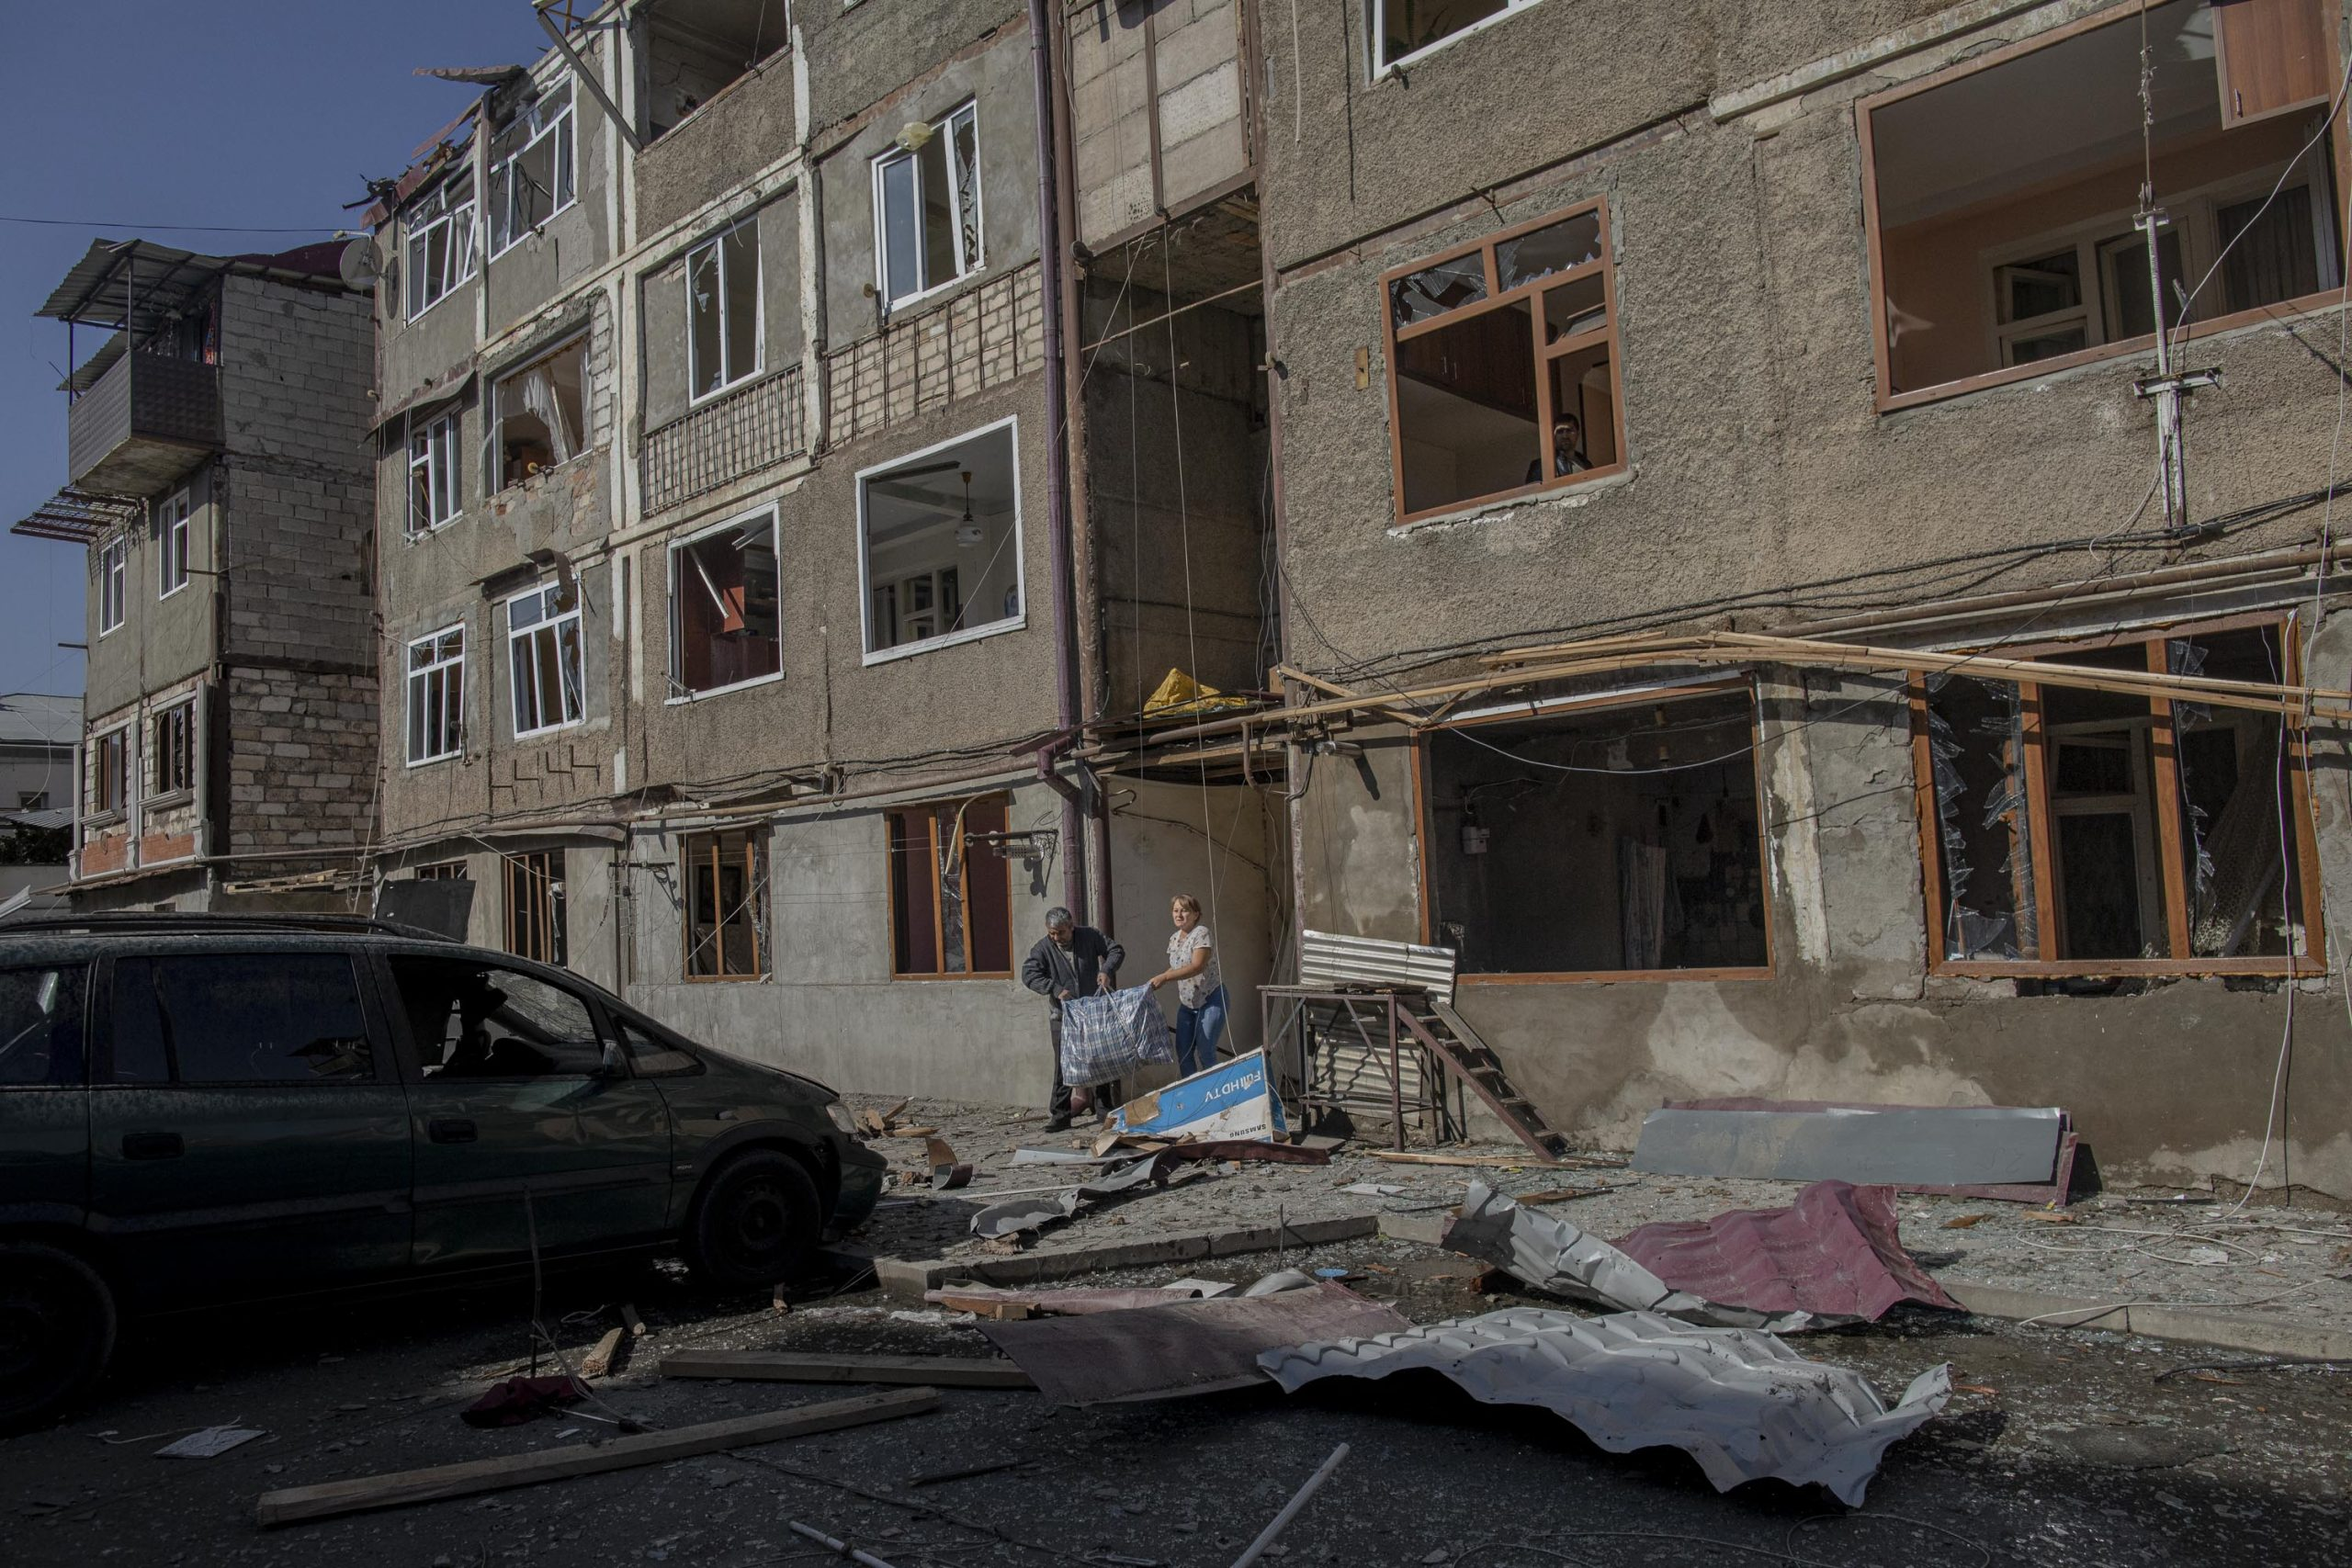 People carry their belongings out of a building damaged by a missile attack, in Stepanakert, Nagorno-Karabakh, on October 3, 2020. The building was damaged on the previous day, October 2.